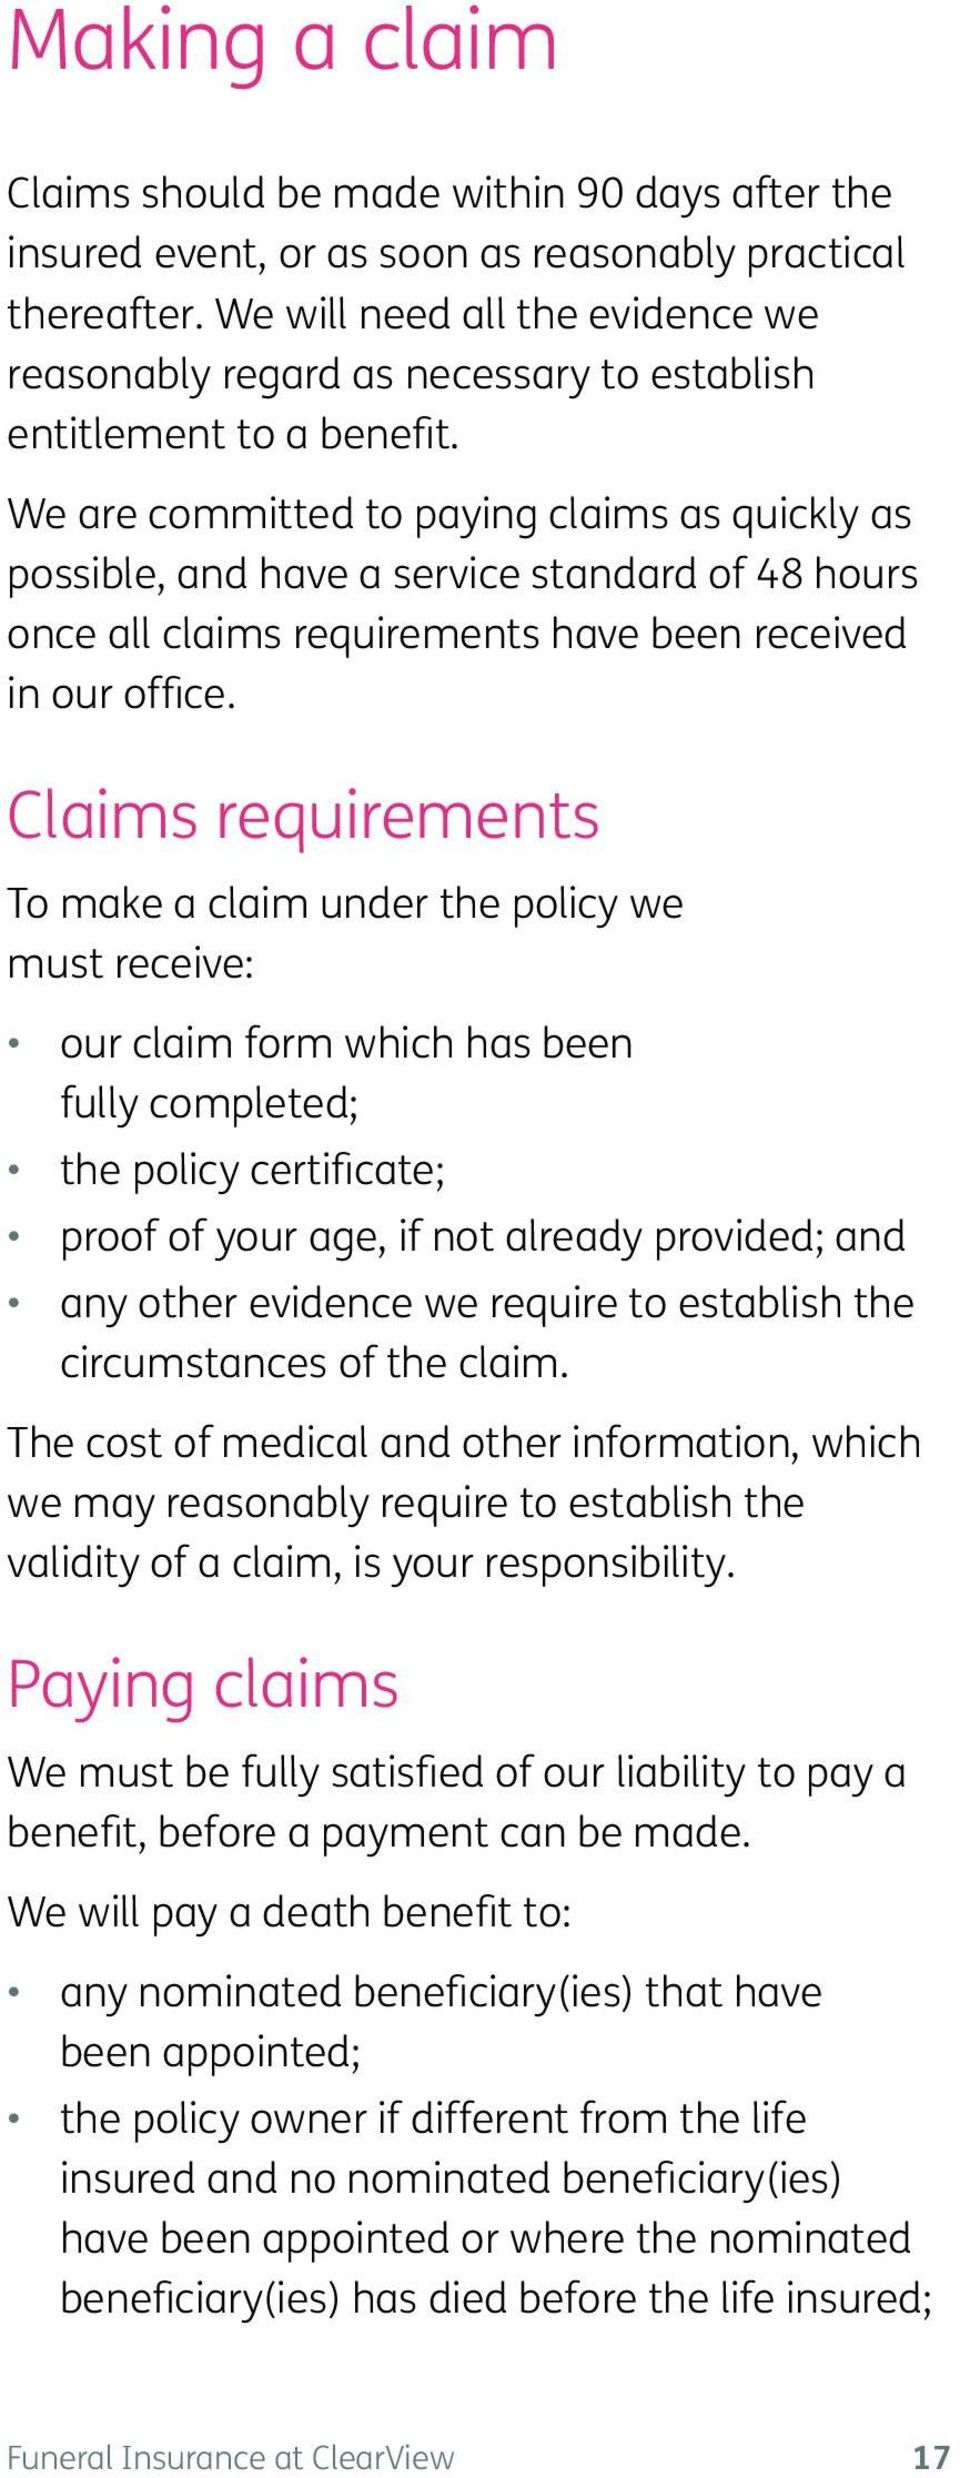 We are committed to paying claims as quickly as possible, and have a service standard of 48 hours once all claims requirements have been received in our office.